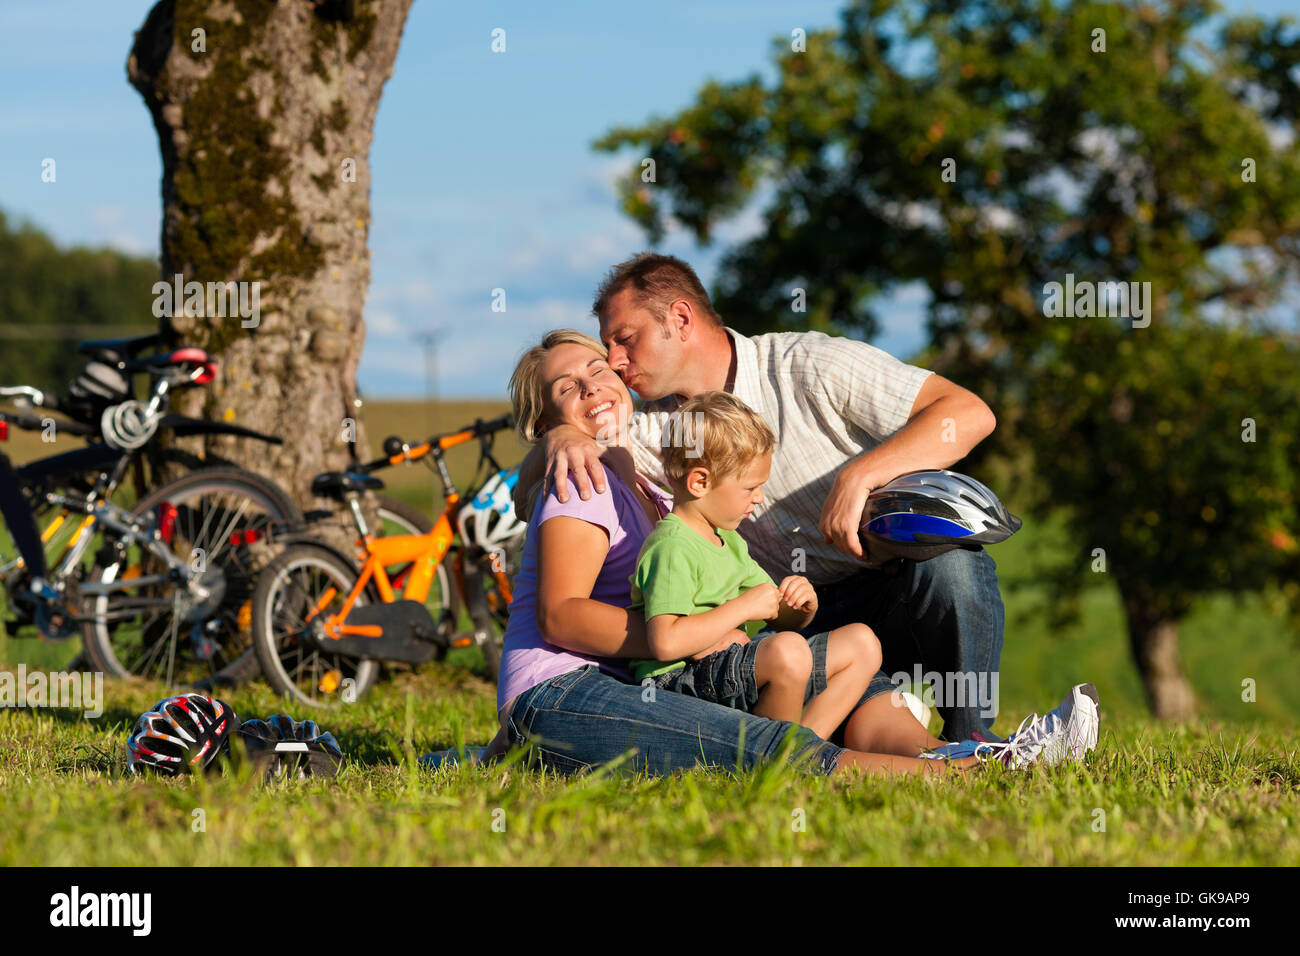 summer summerly outing - Stock Image